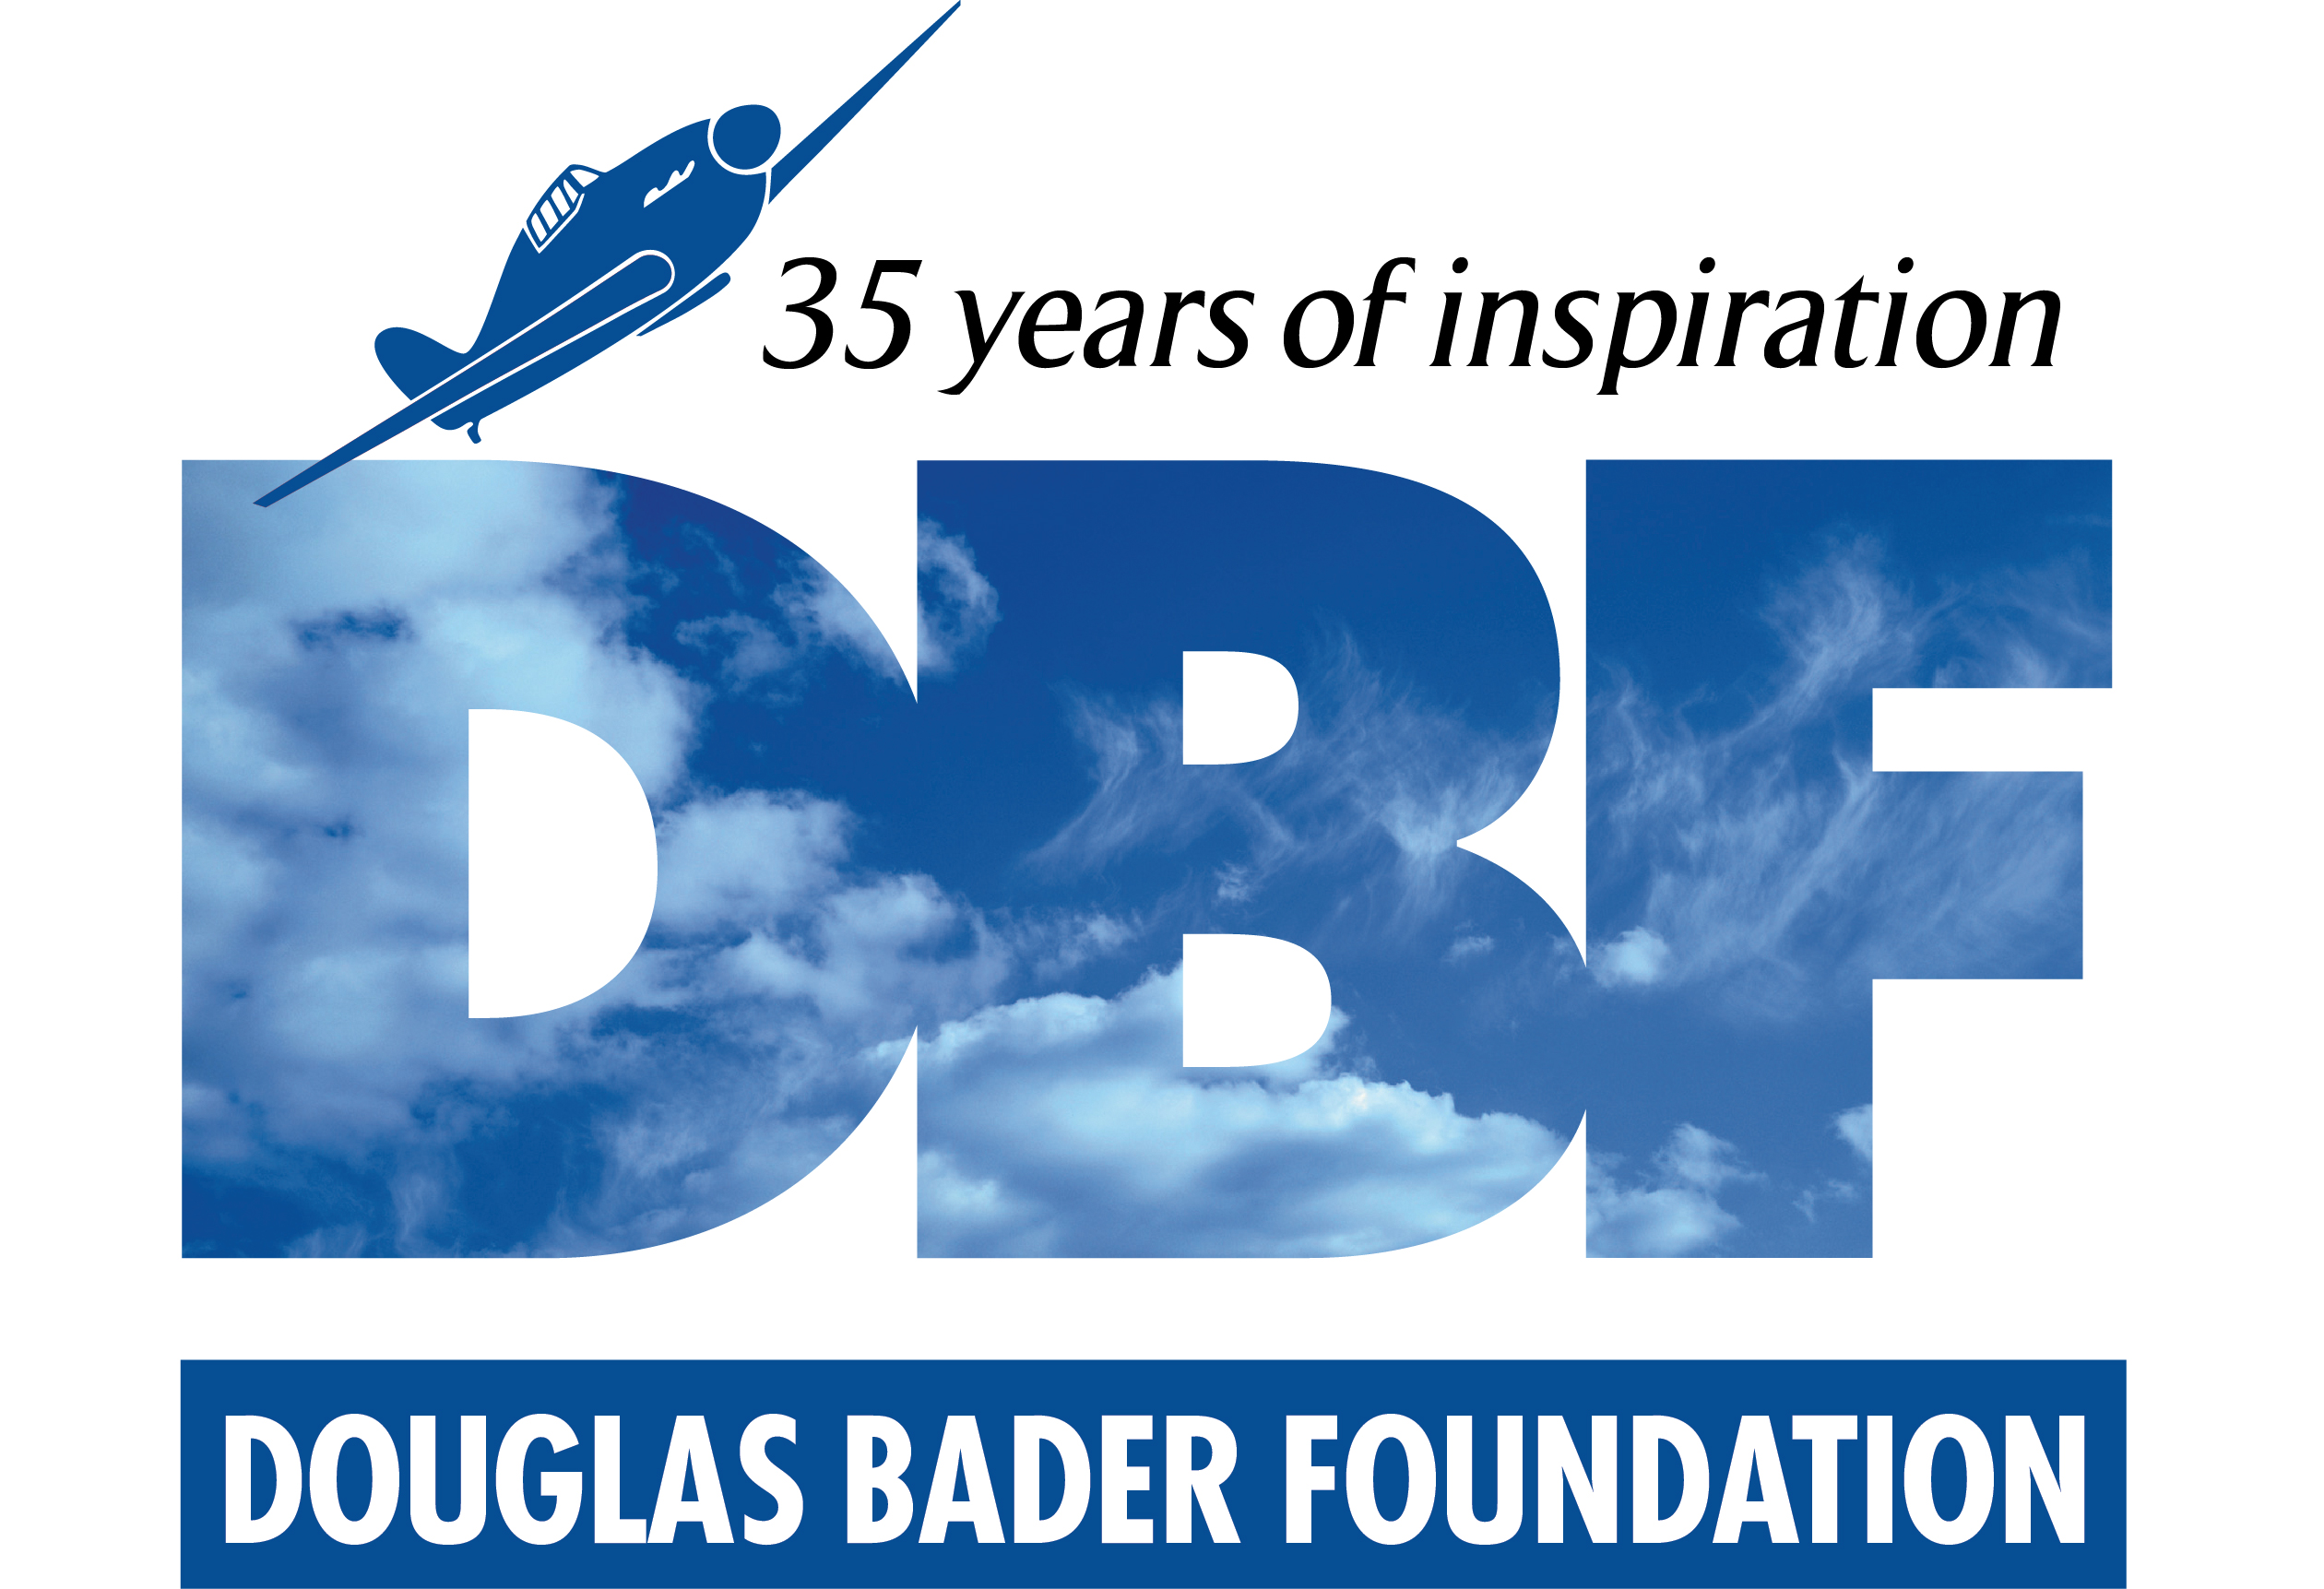 Douglas Bader Foundation